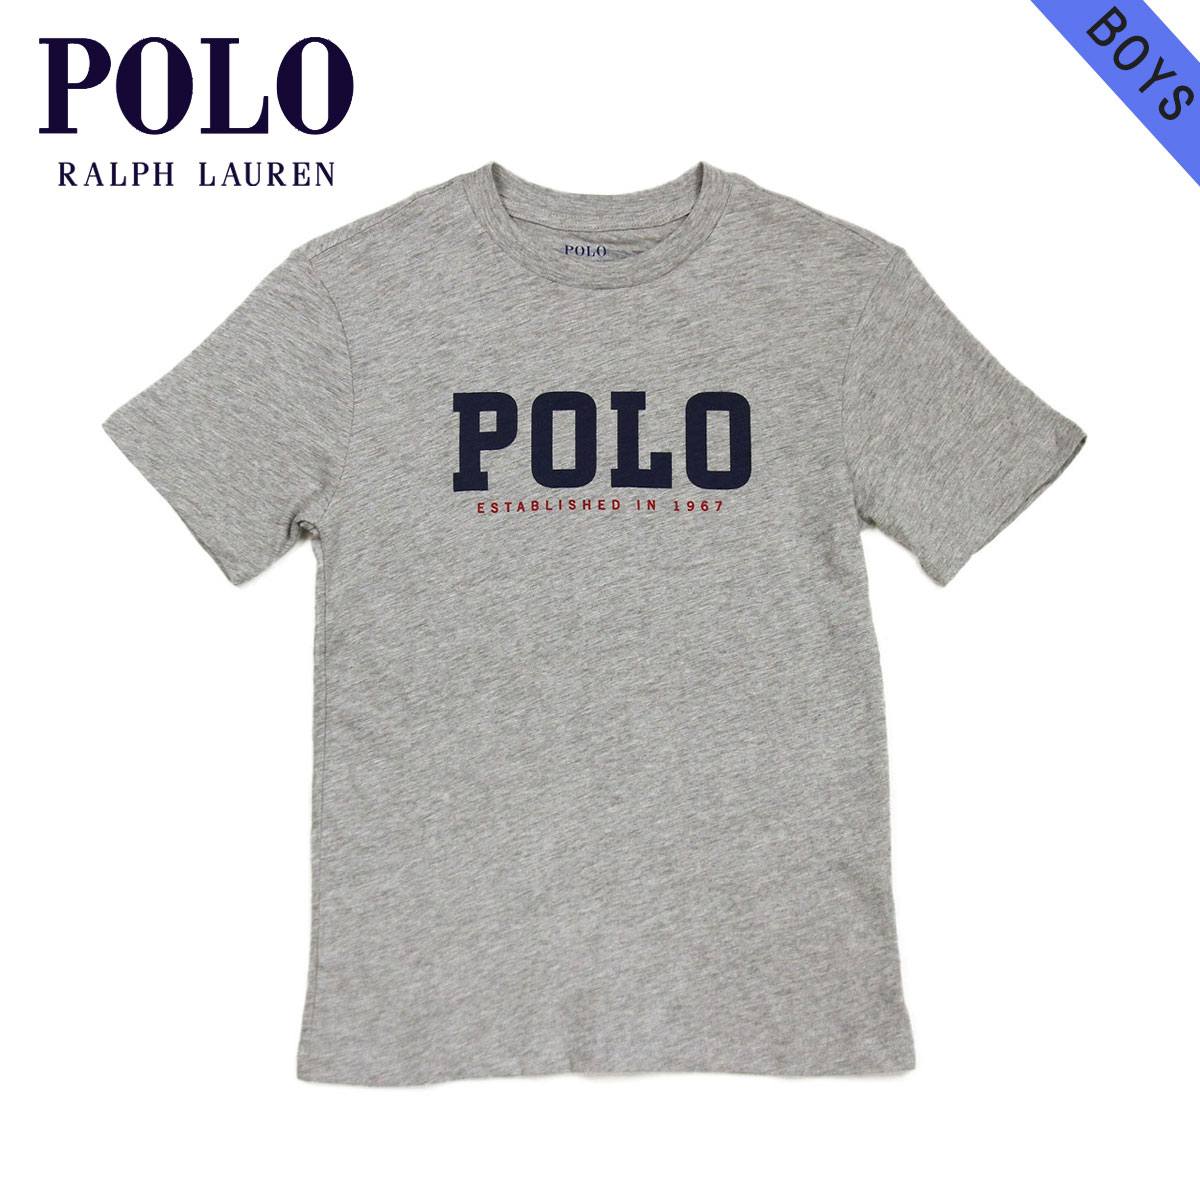 Polo Ralph Lauren kids POLO RALPH LAUREN CHILDREN regular article  children s clothes Boys short sleeves logo T-shirt Slub Cotton Jersey  Graphic Tee 09481662f